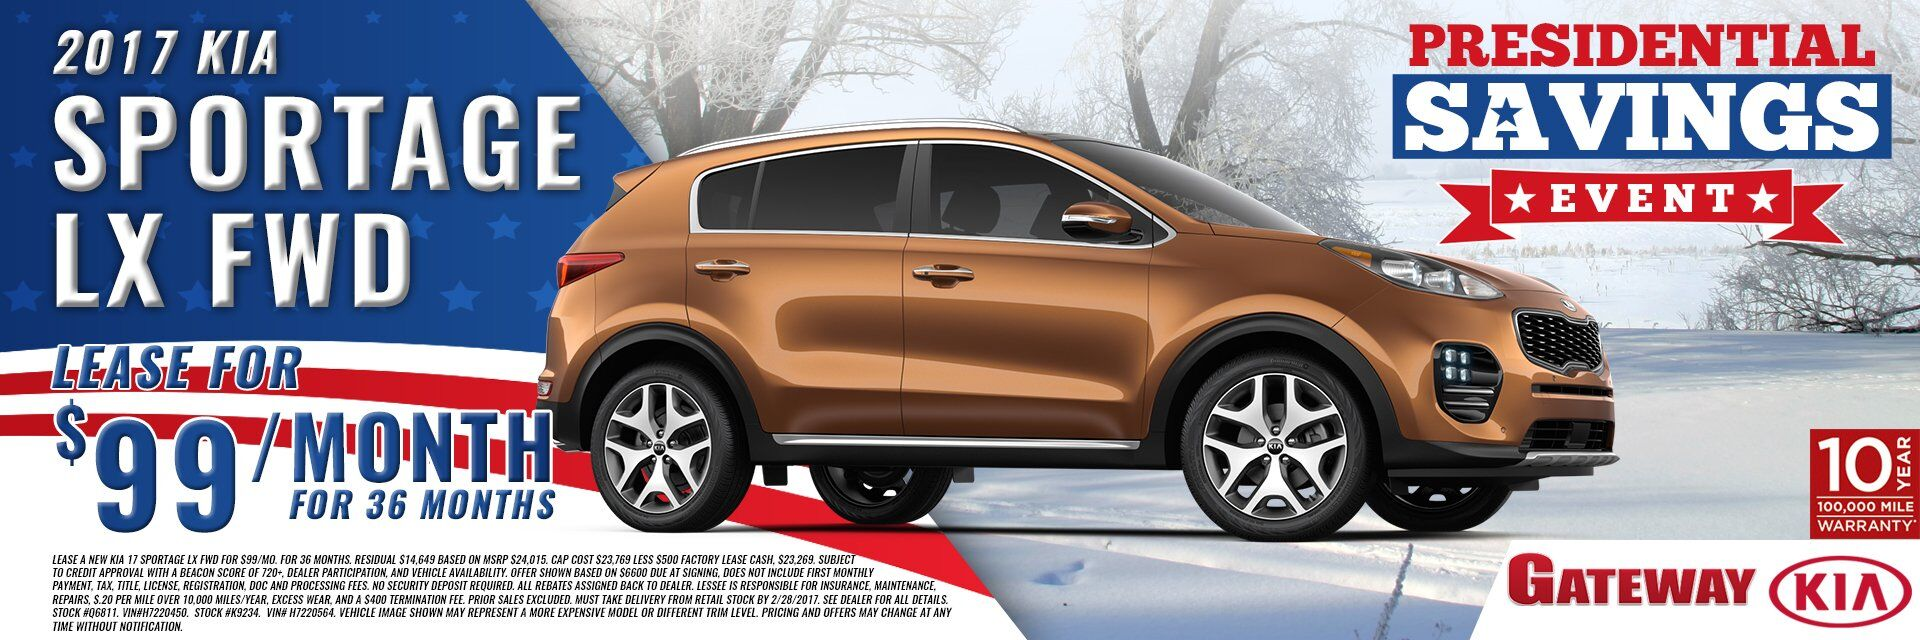 2017 KIA Sportage LX for $99 per mo